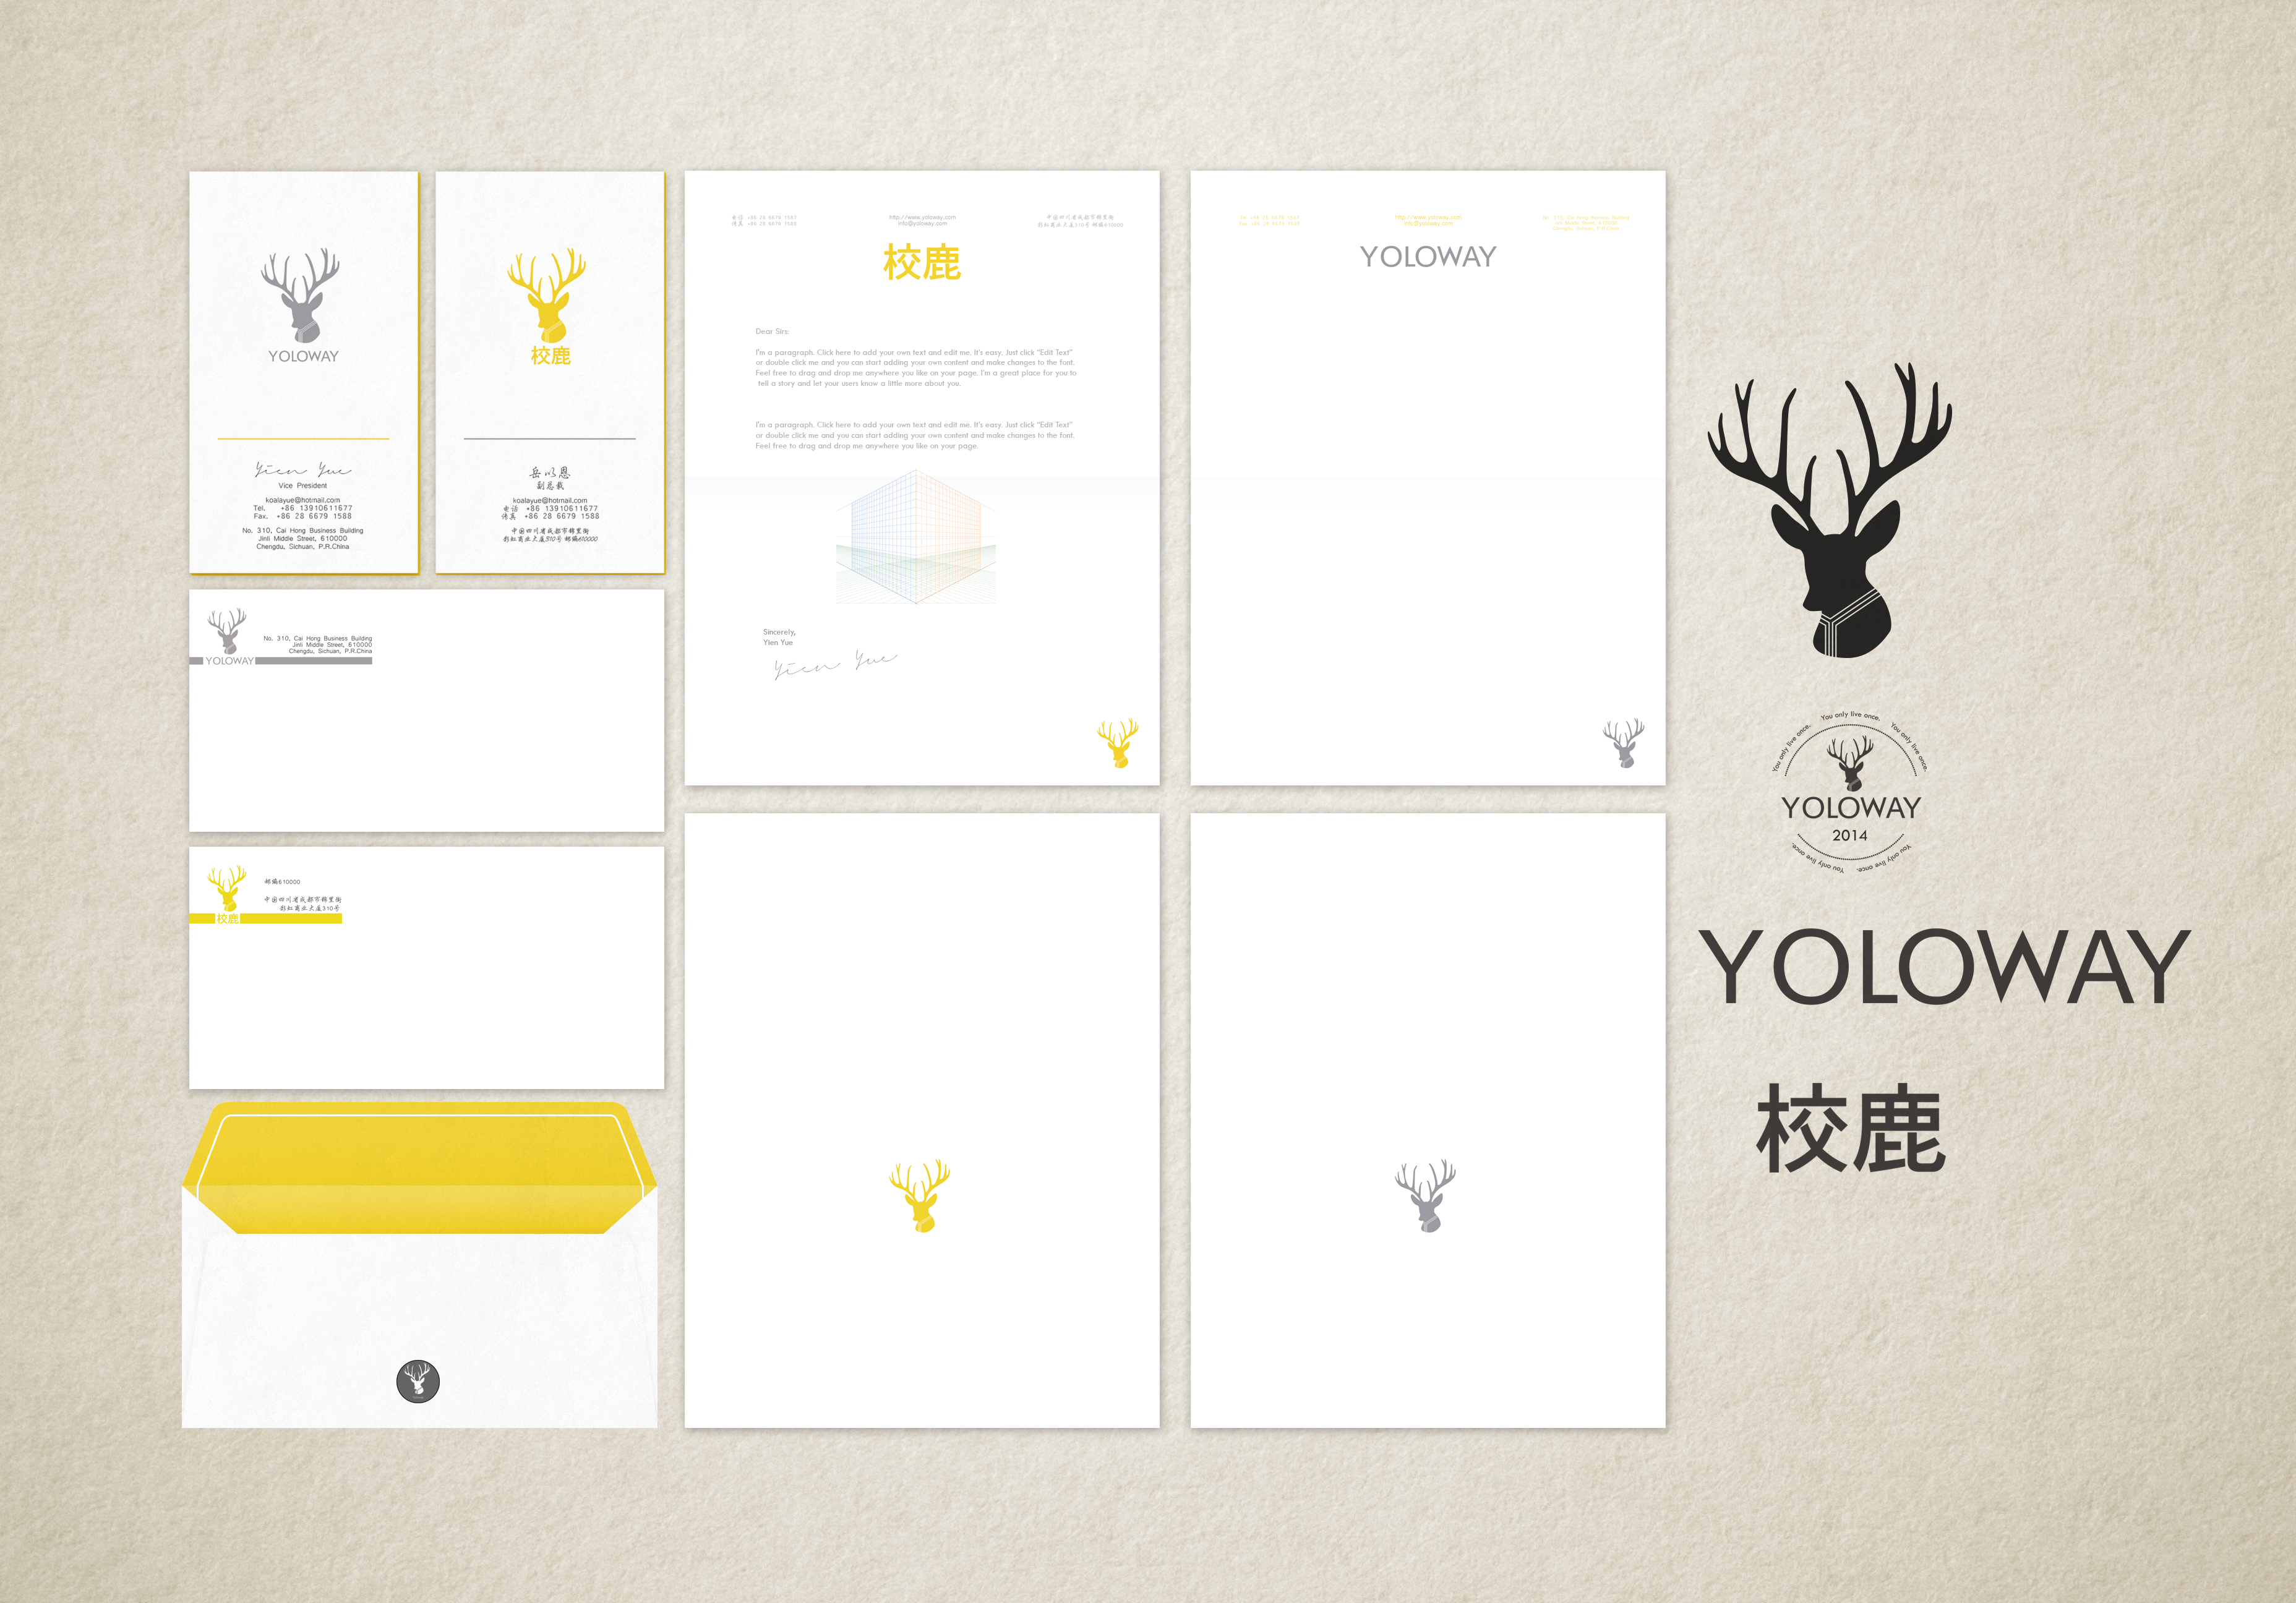 UI Design for Yoloway Corporation